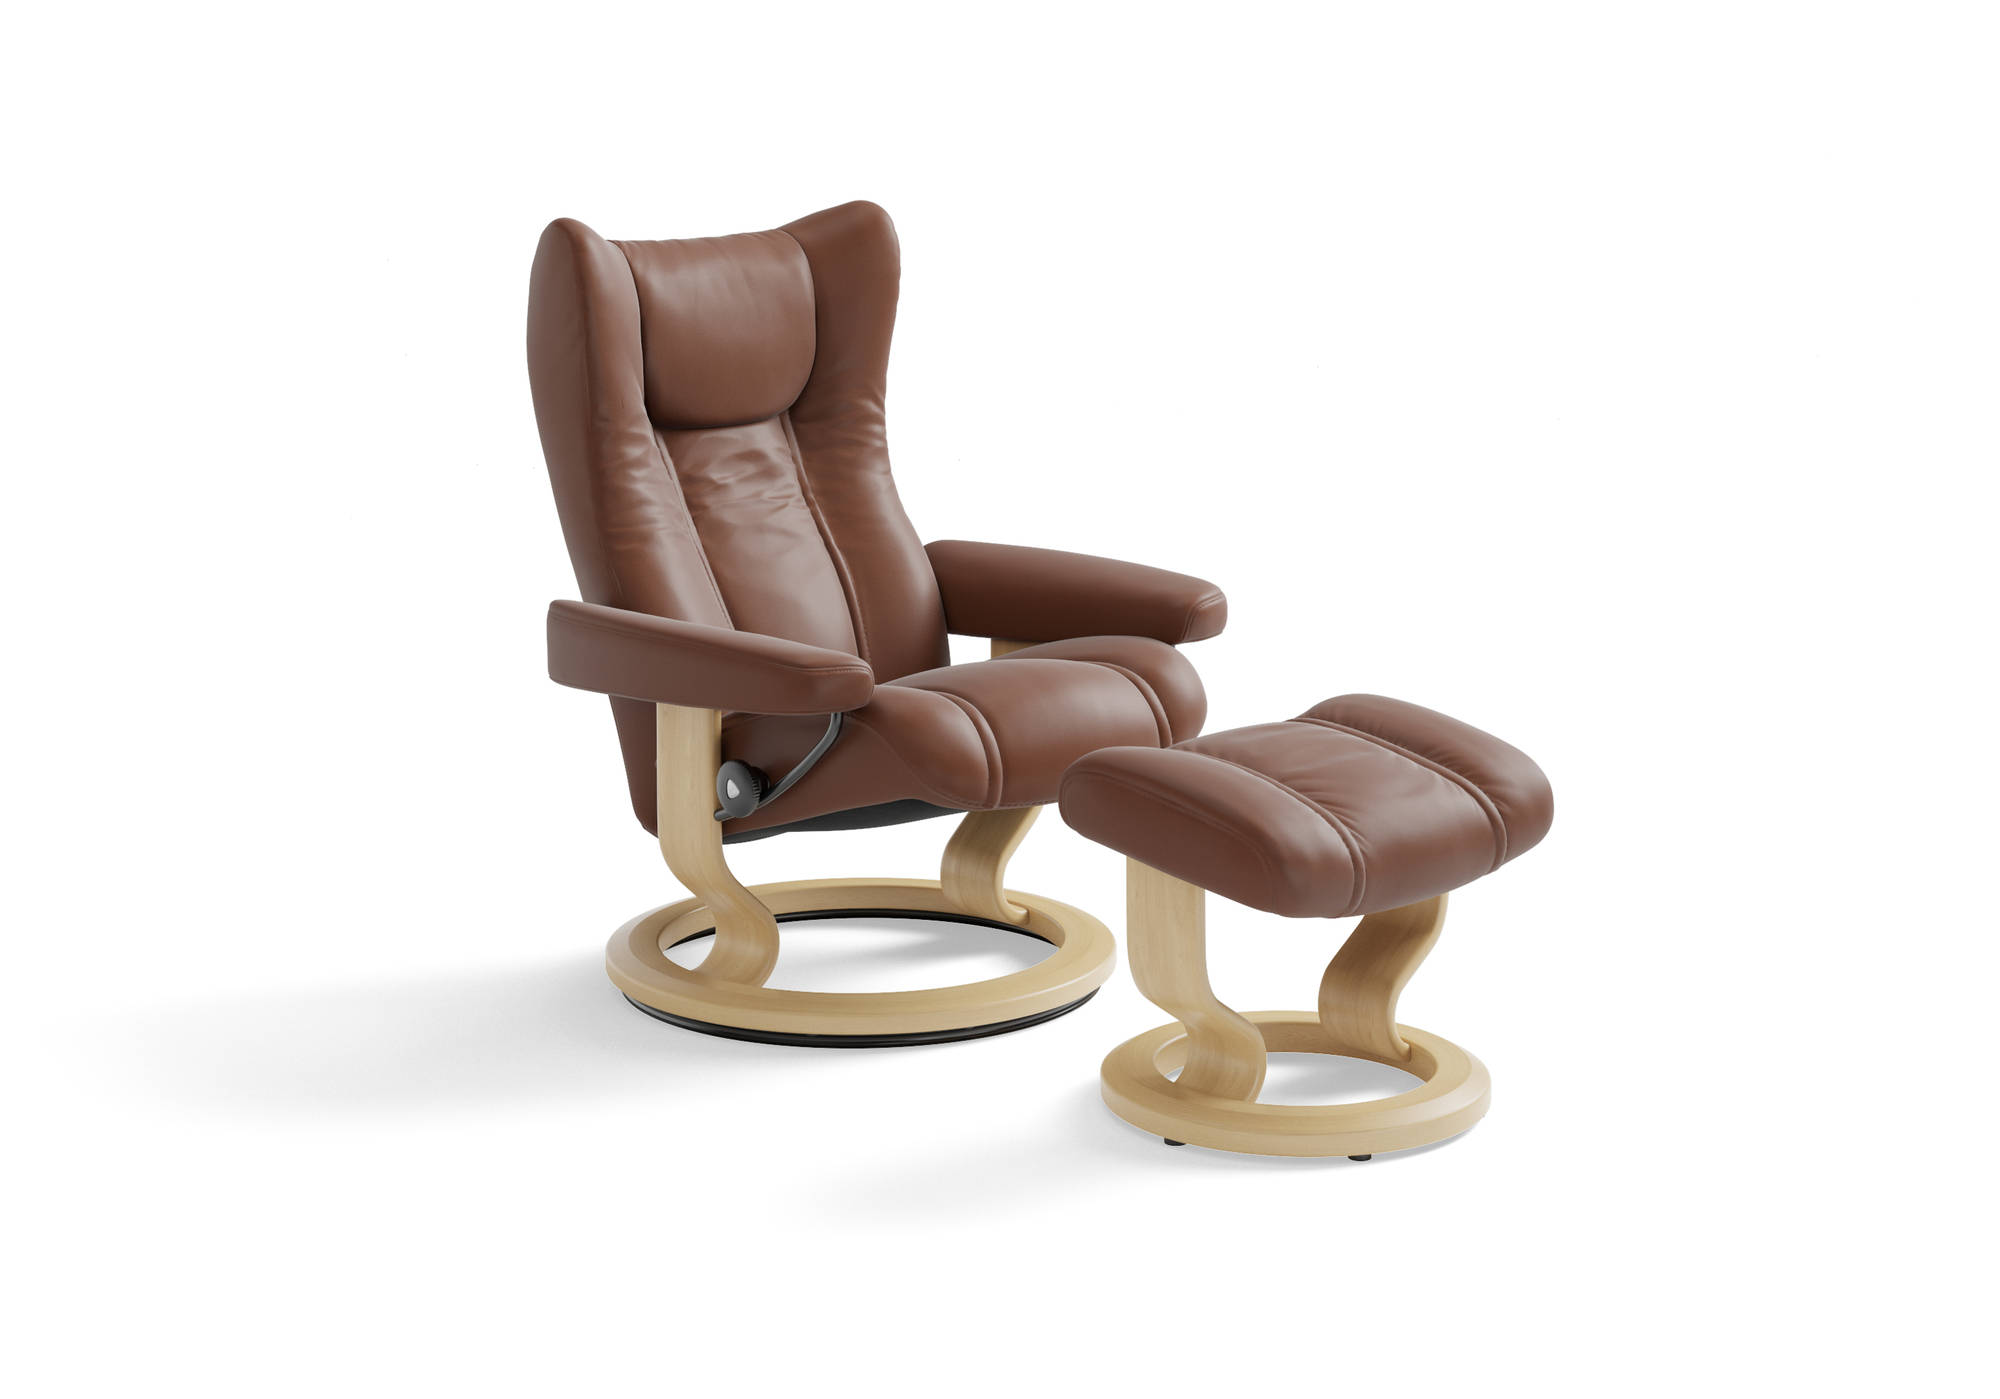 Stressless-world.com Stressless Wing Classic Design Initial